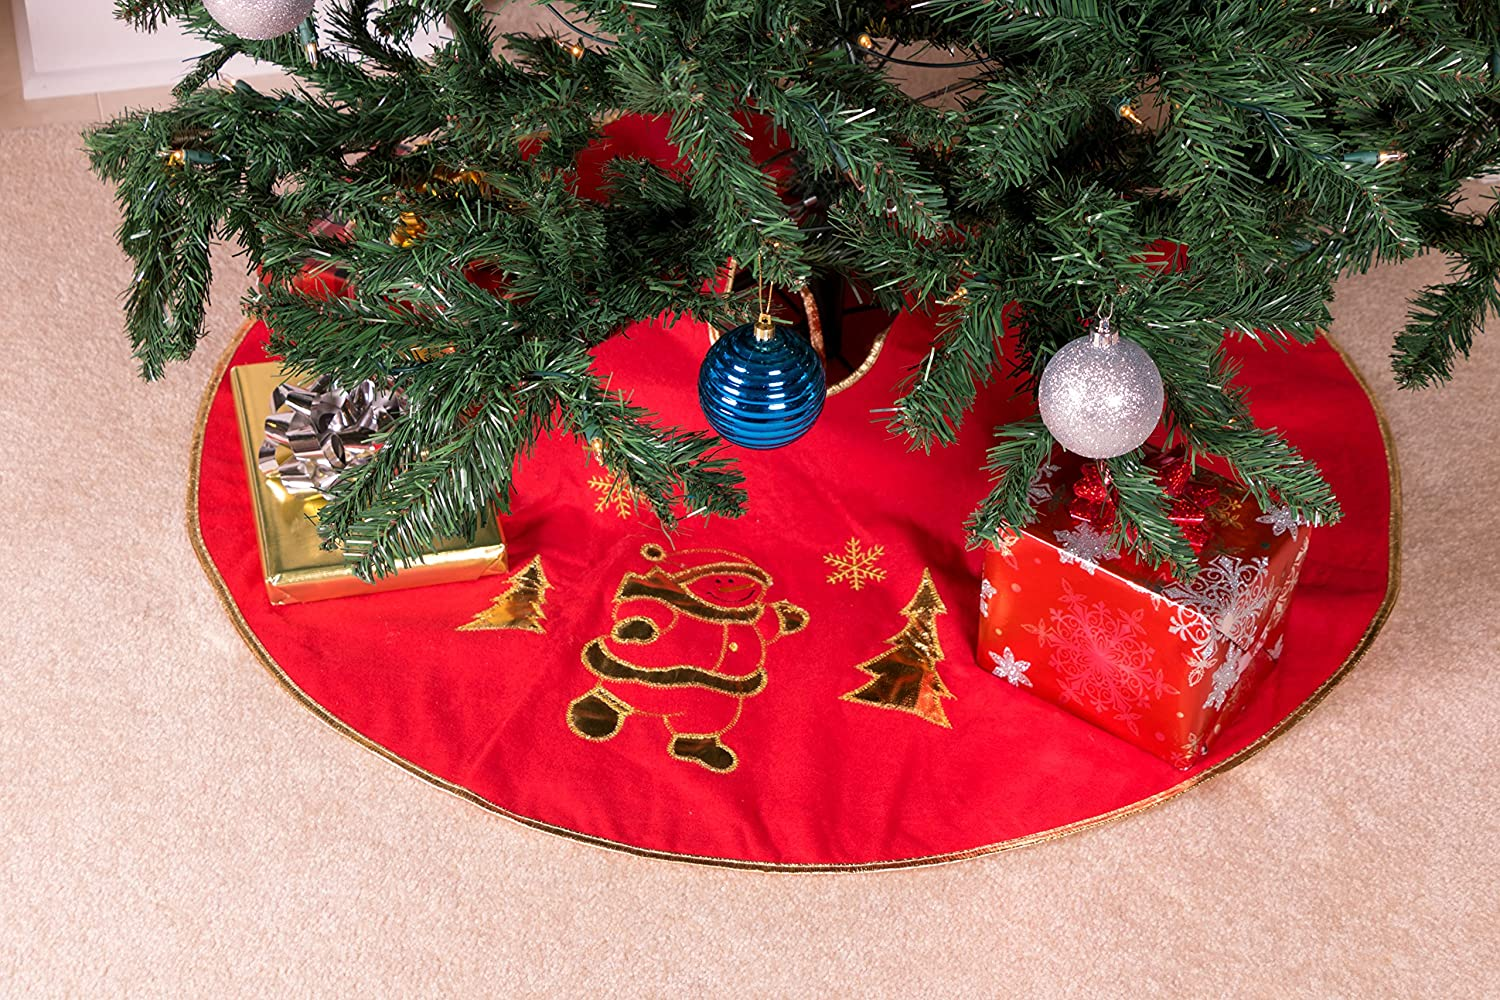 Red and White Snowman and Trees Christmas Design Christmas Tree Needle Catching Ornamental Under The Tree Cloth Floor Skirt Measures 39 Diameter Perfect for Any Size Tree